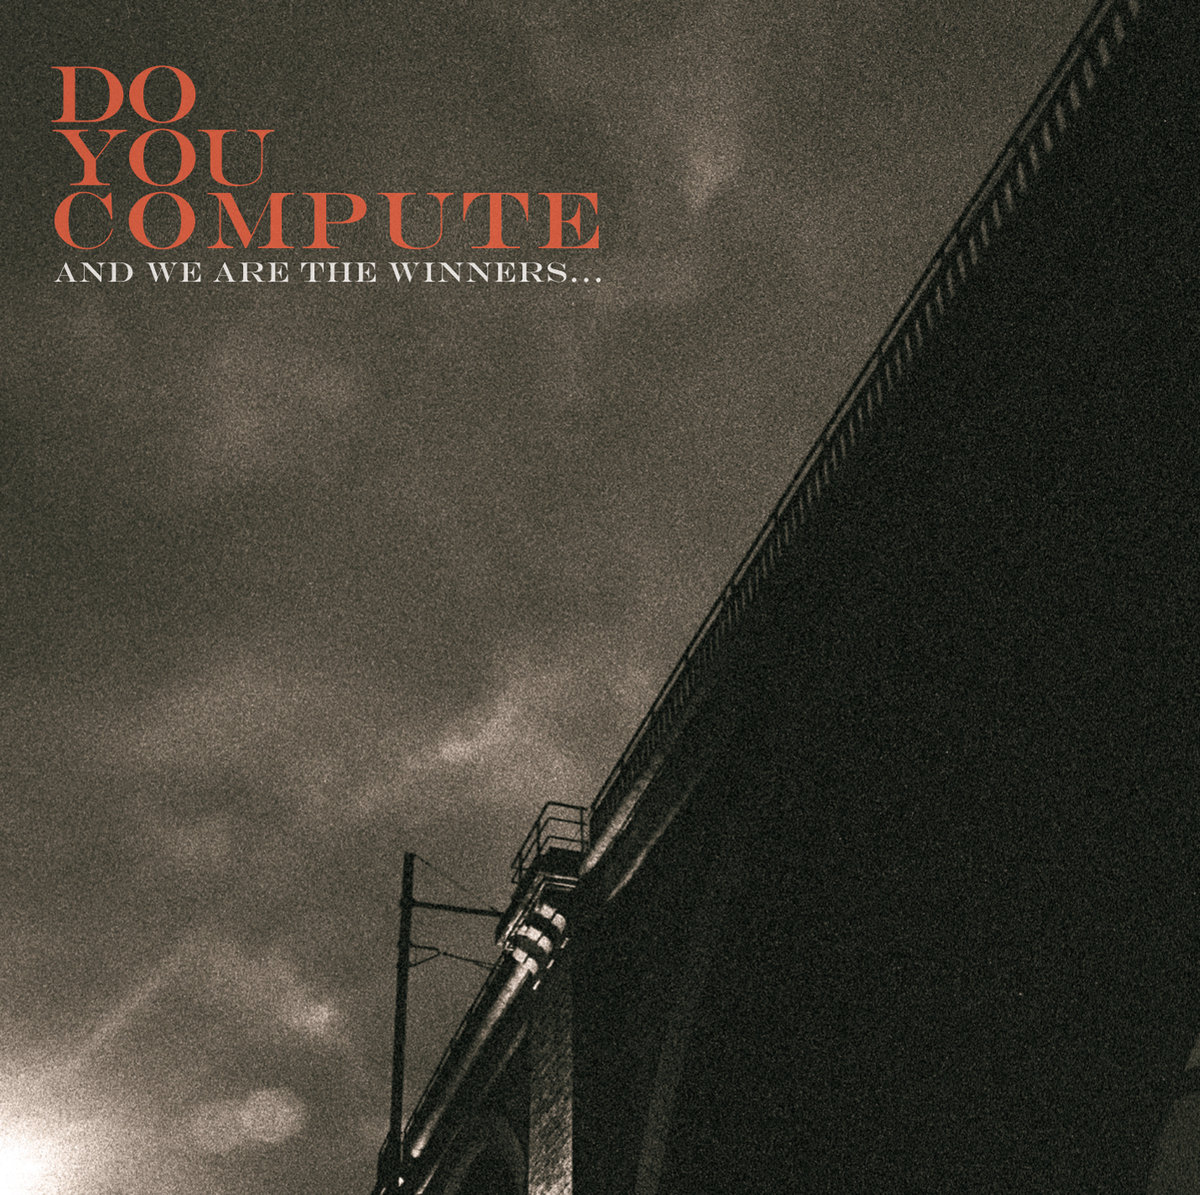 DO YOU COMPUTE And we are the winners… - Vinyl LP (black)